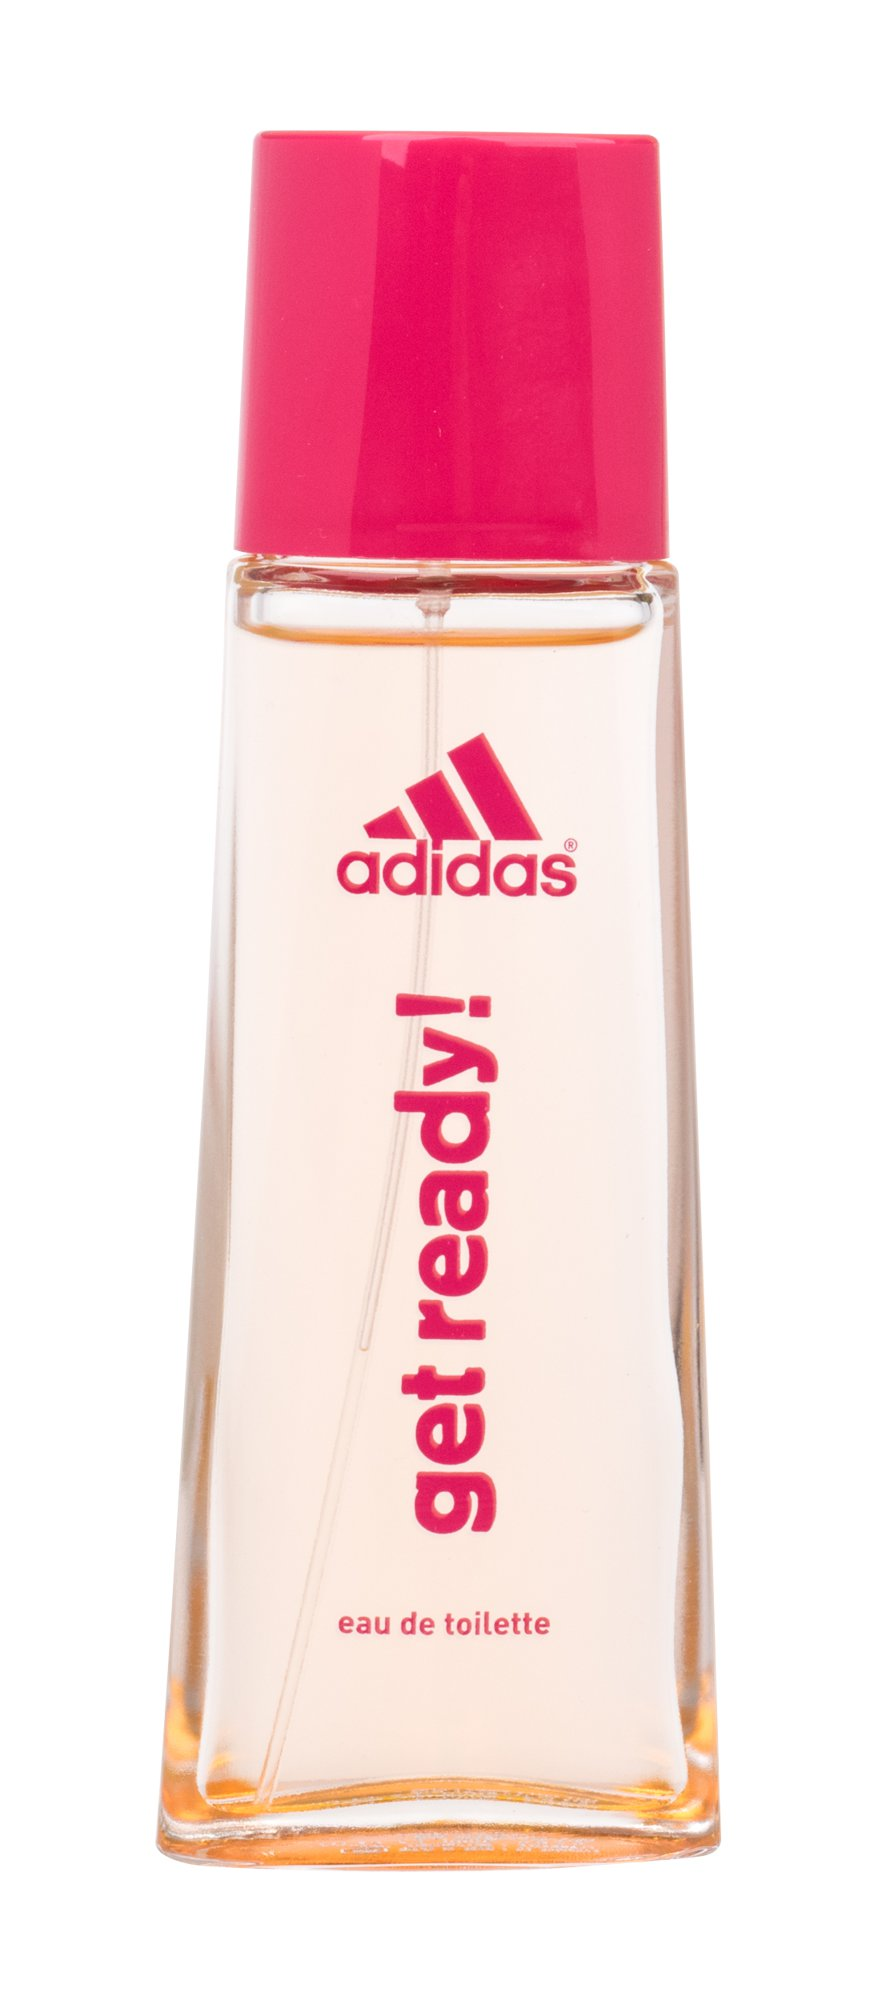 Adidas Get Ready! For Her, edt 50ml